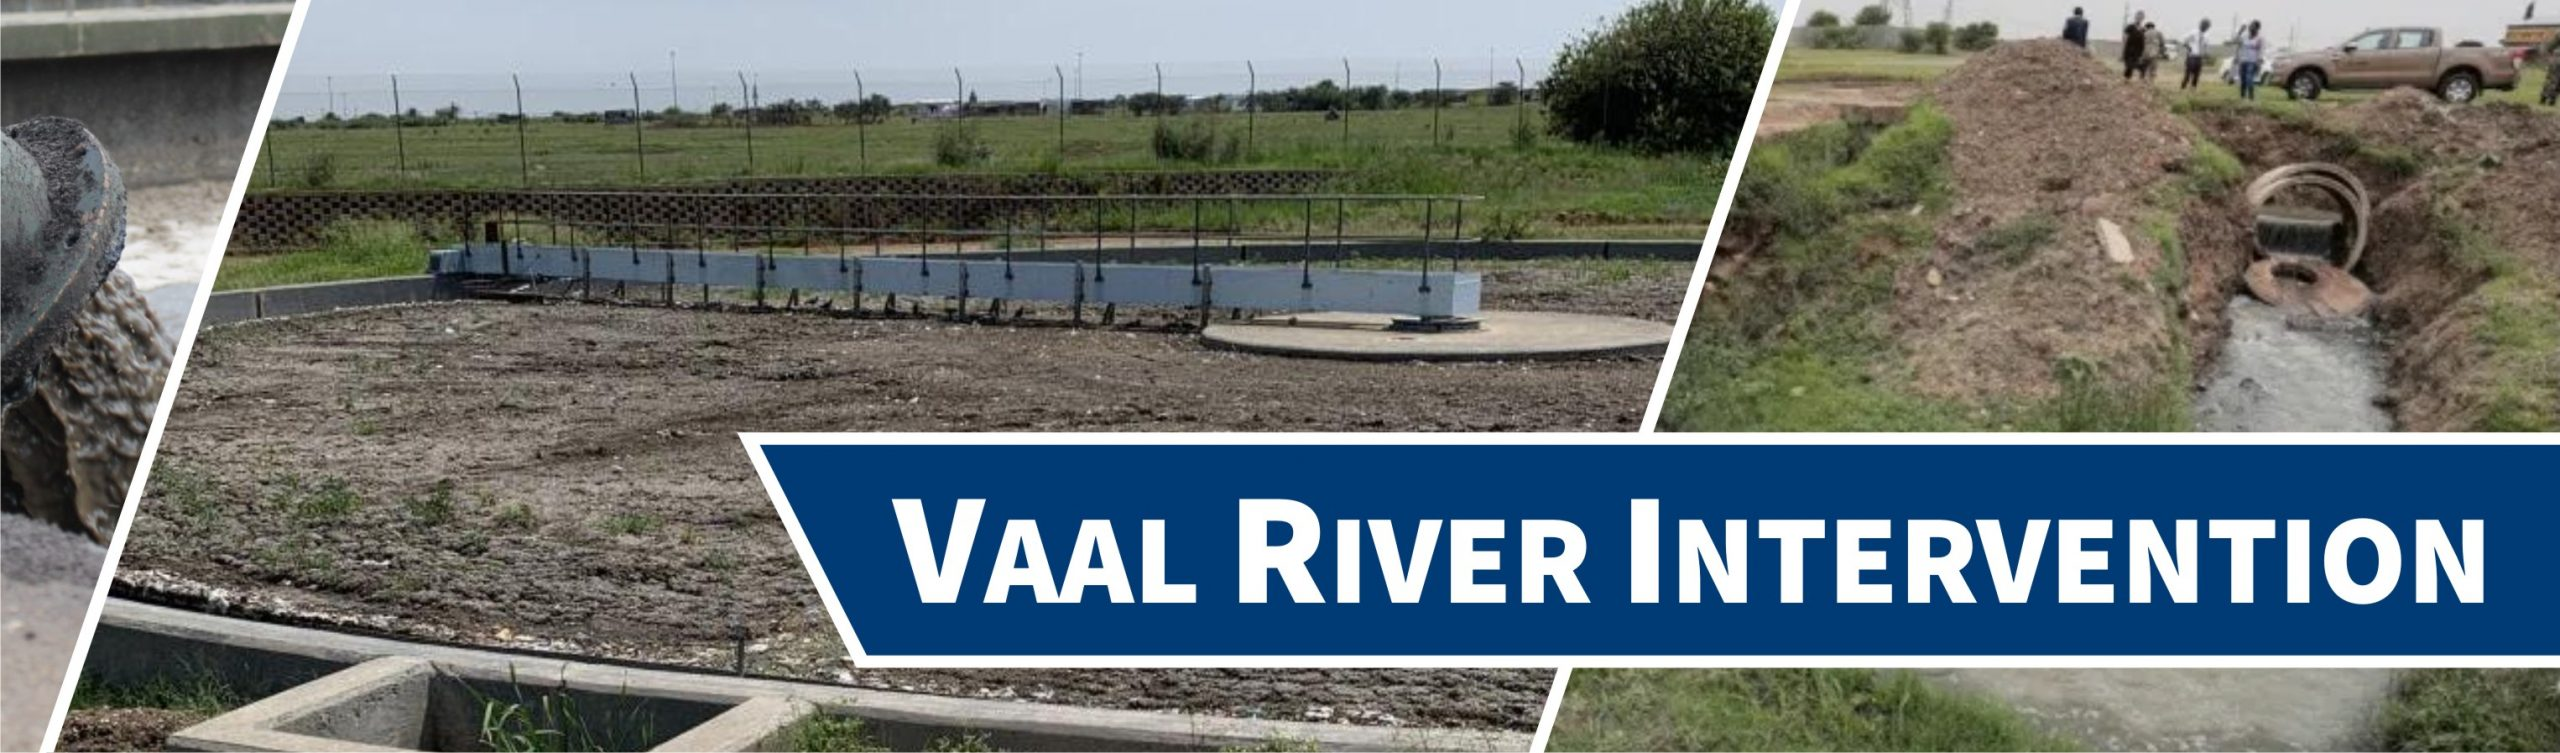 Vaal River Intervention